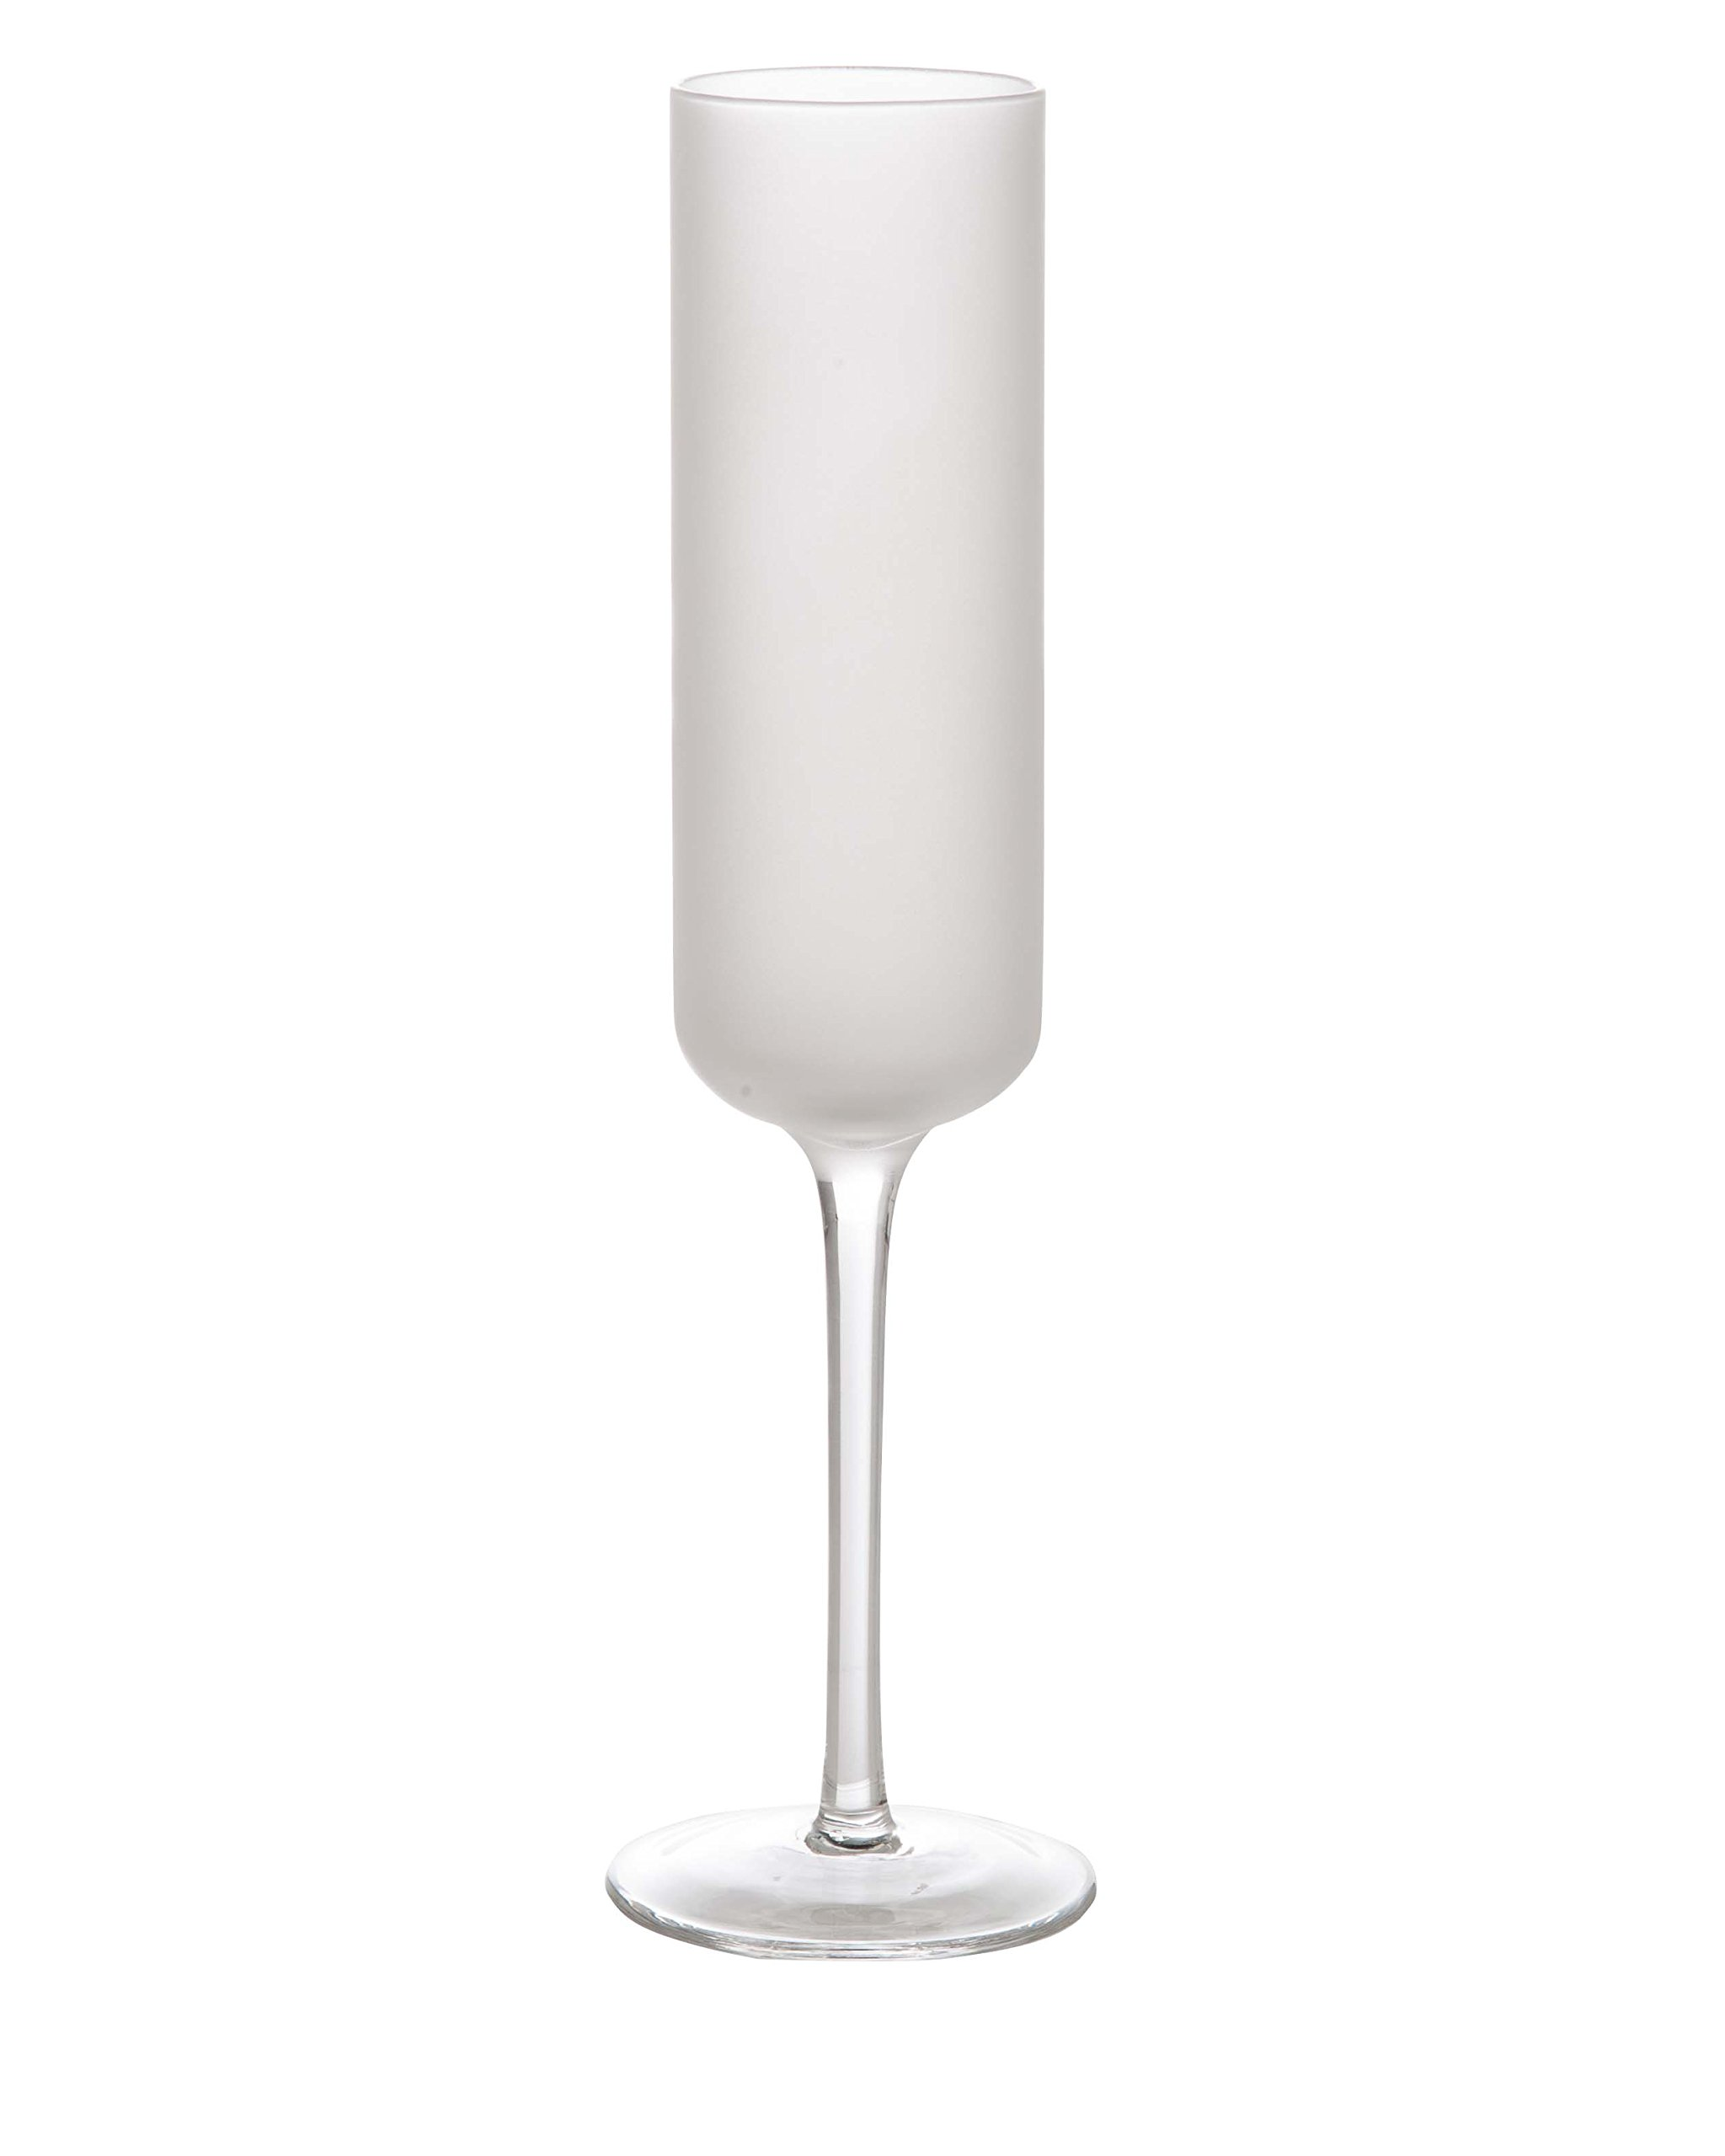 Abigails 726019 Frosted Champagne Glass, Set of 4, White